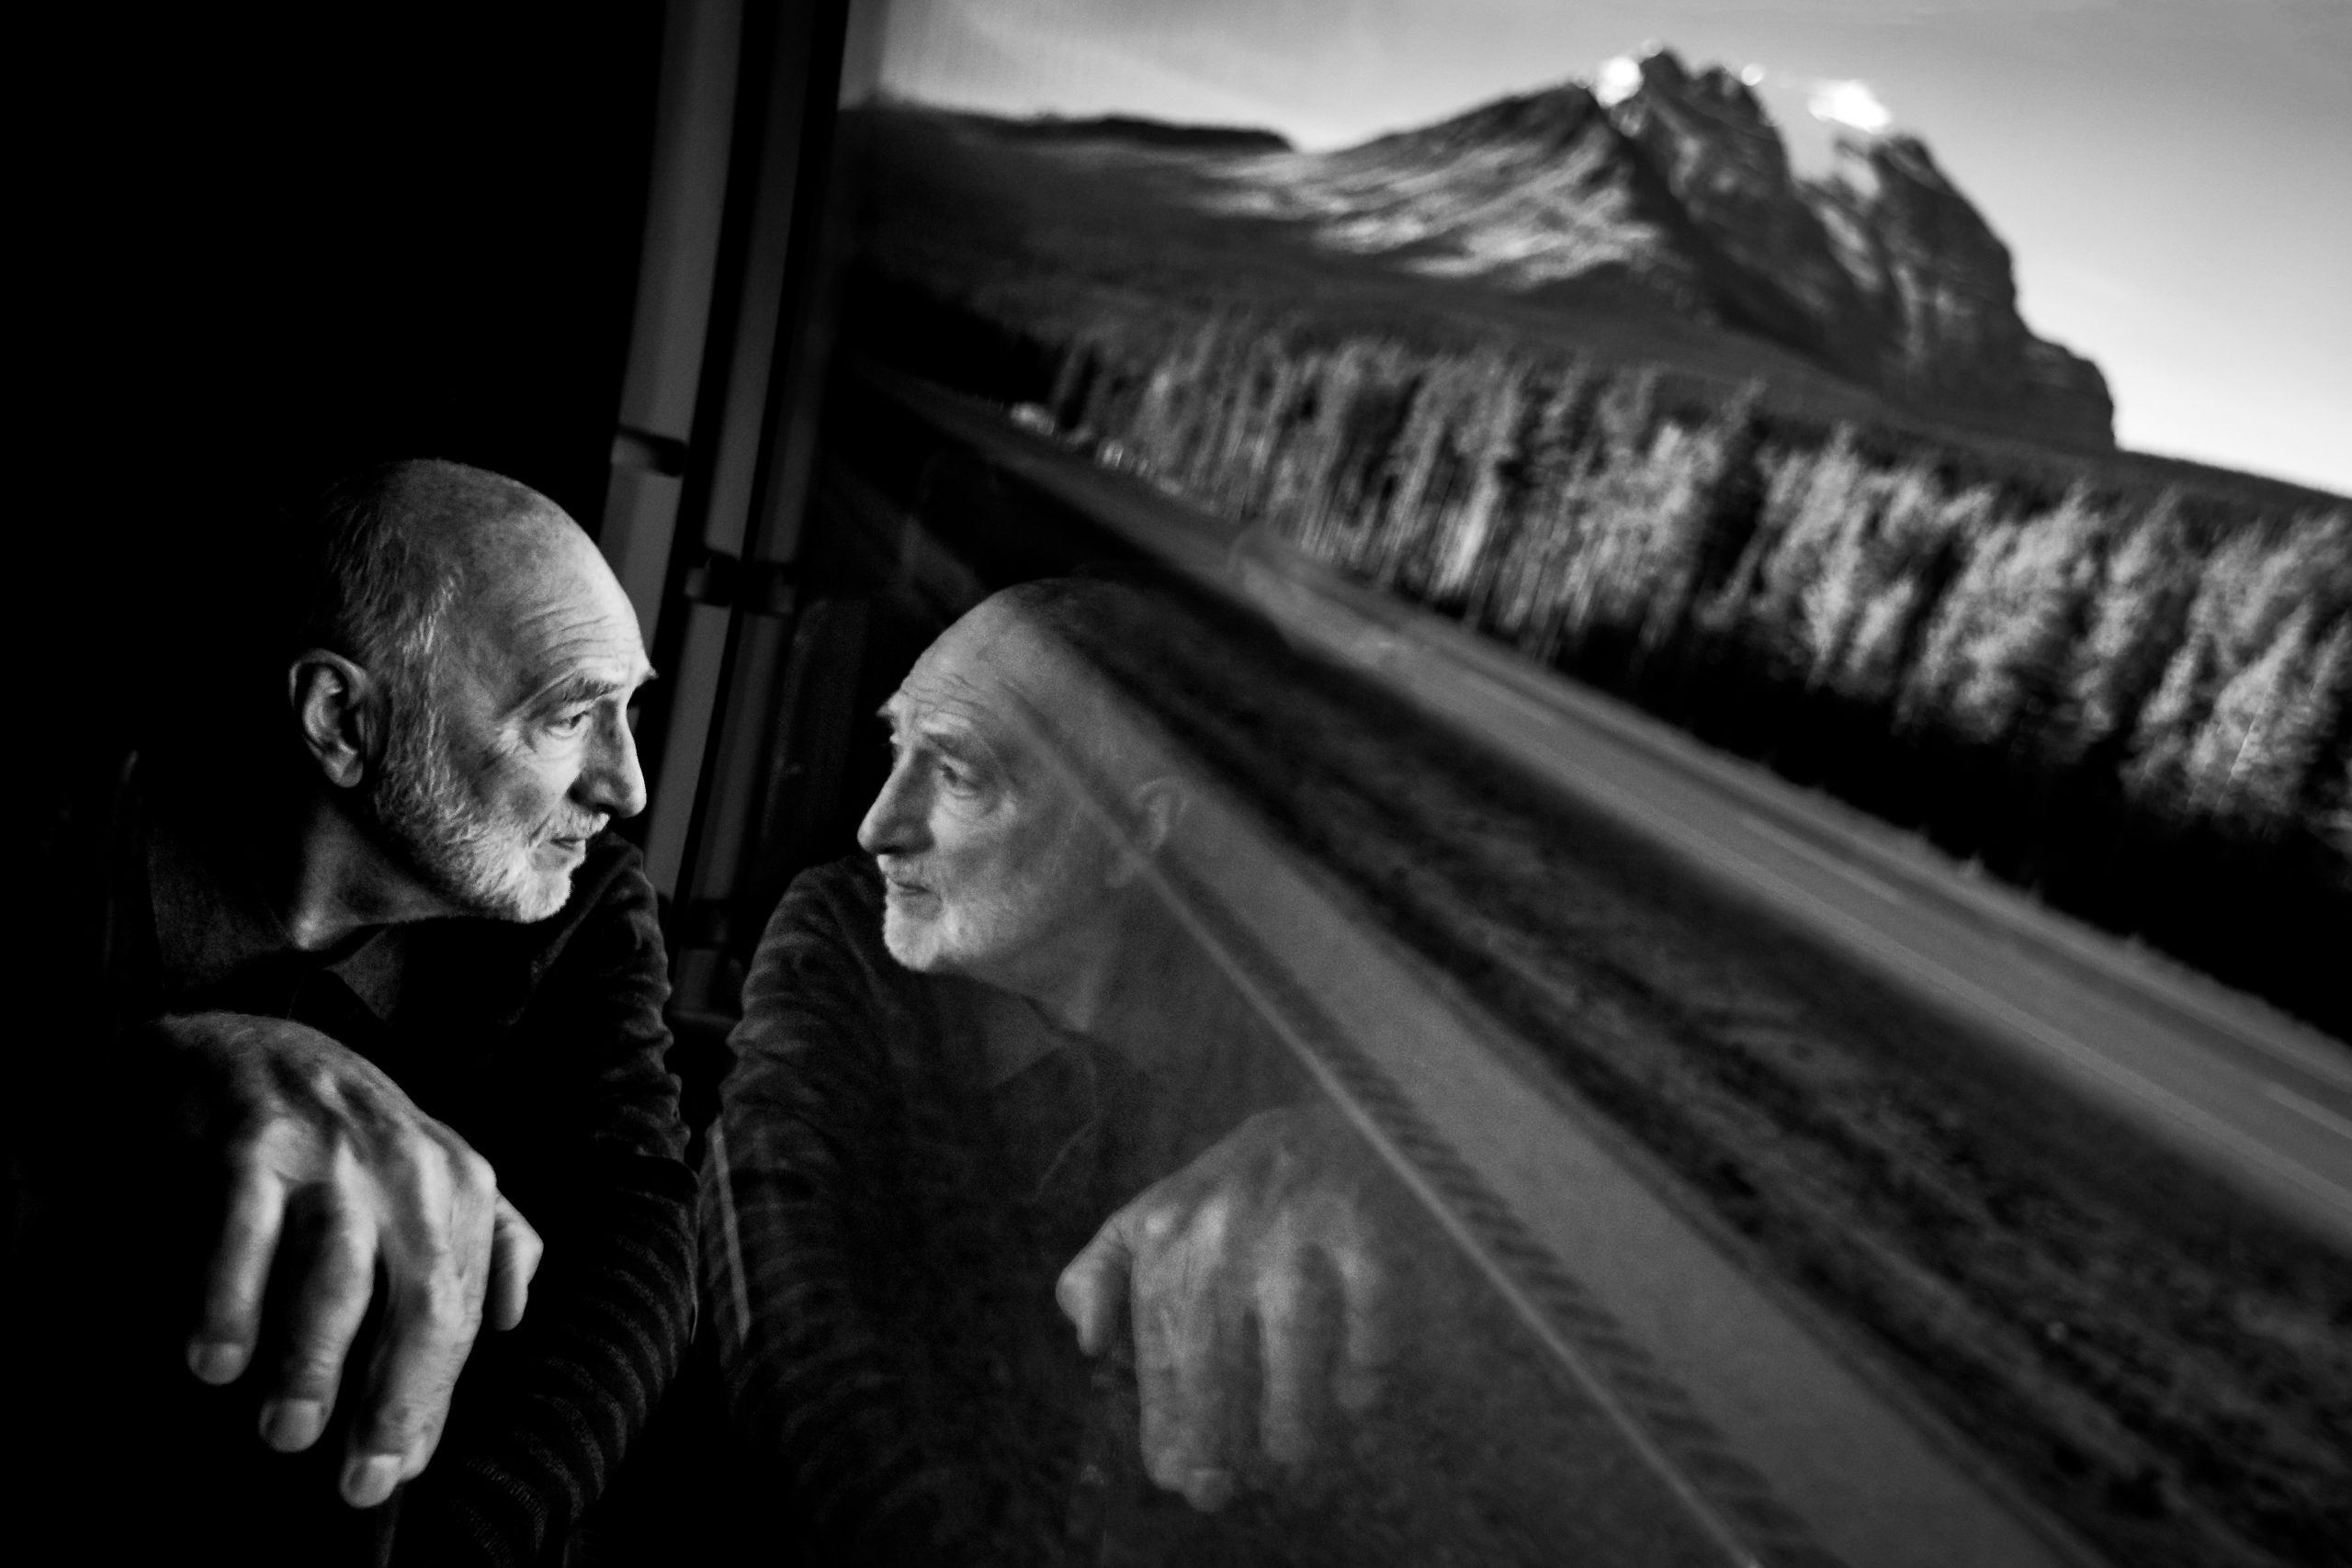 Man looks out window to mountain environment and sees his reflection